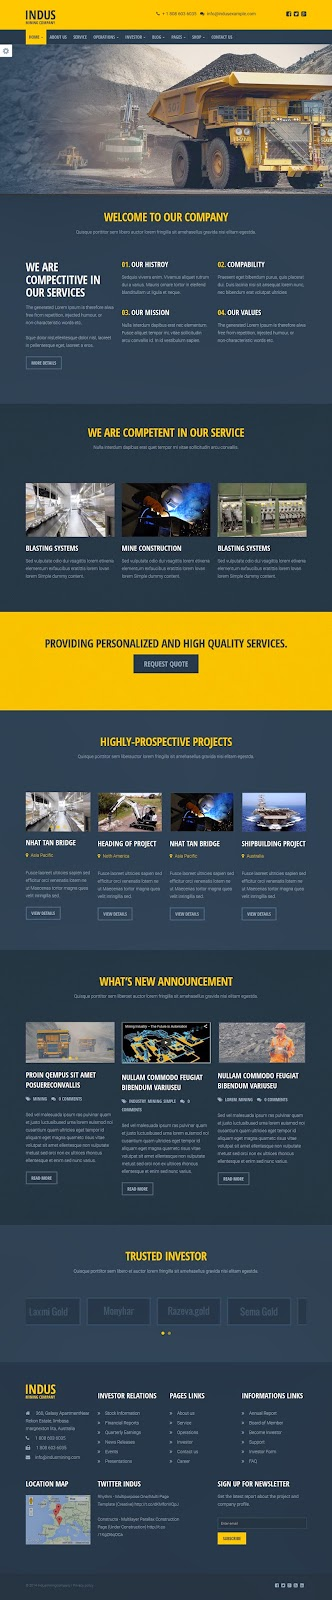 best Industrial Business WordPress Theme 2015